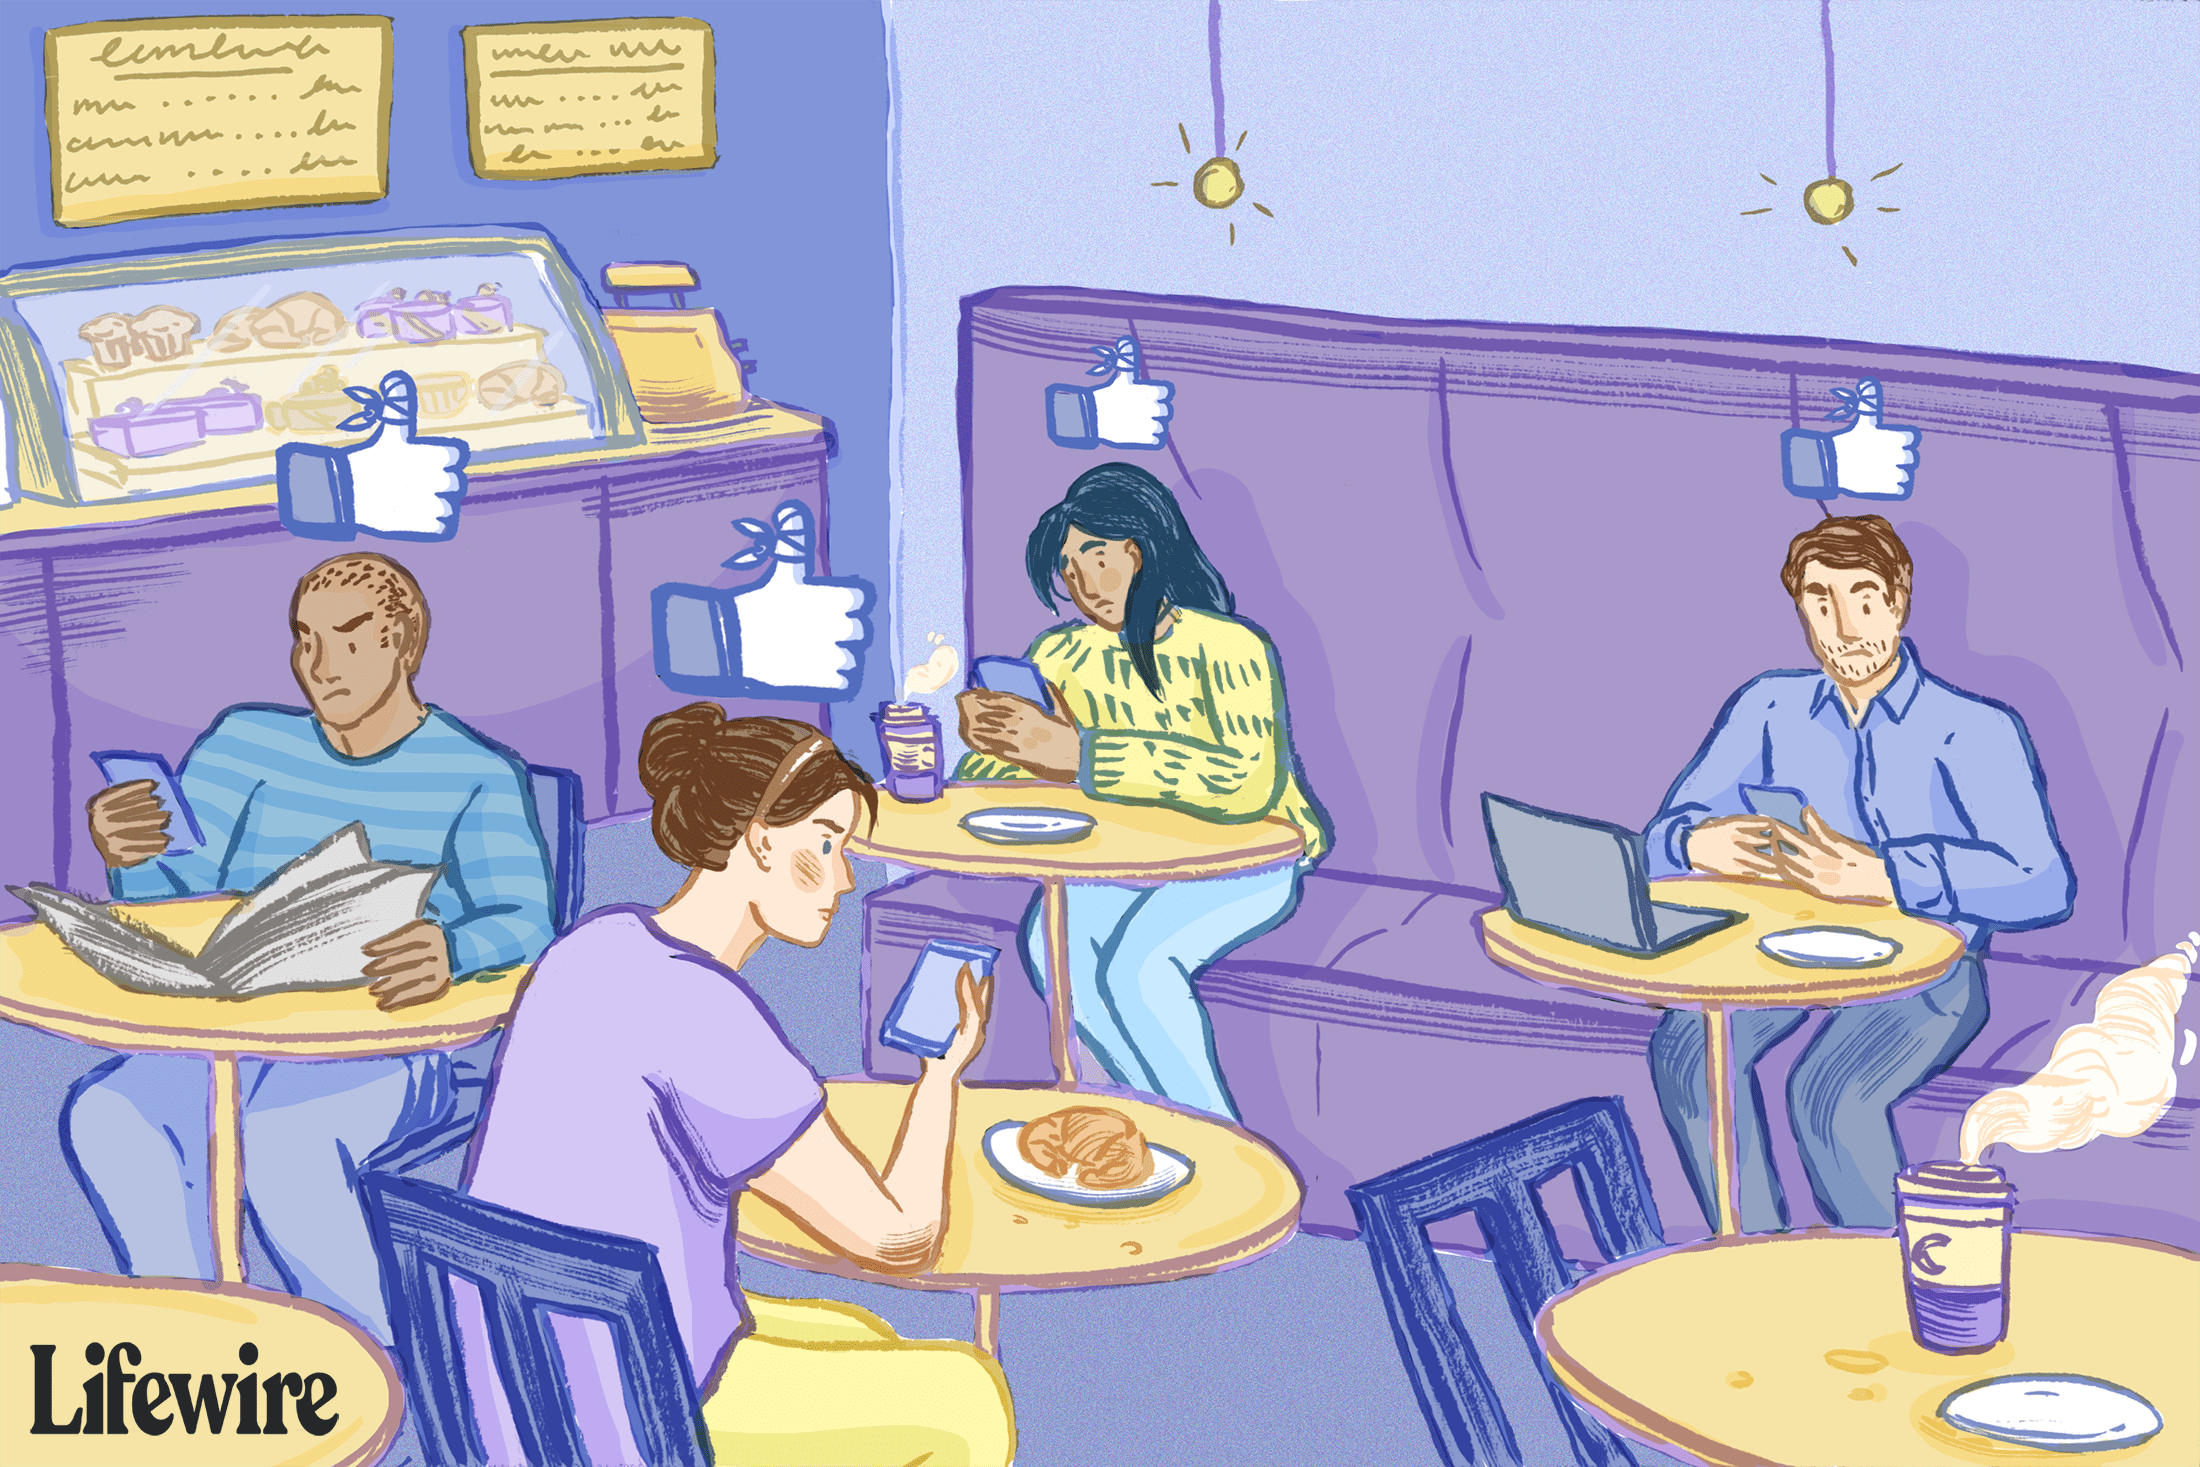 Several people in a cafe, looking puzzled at their devices with a Facebook icon floating above